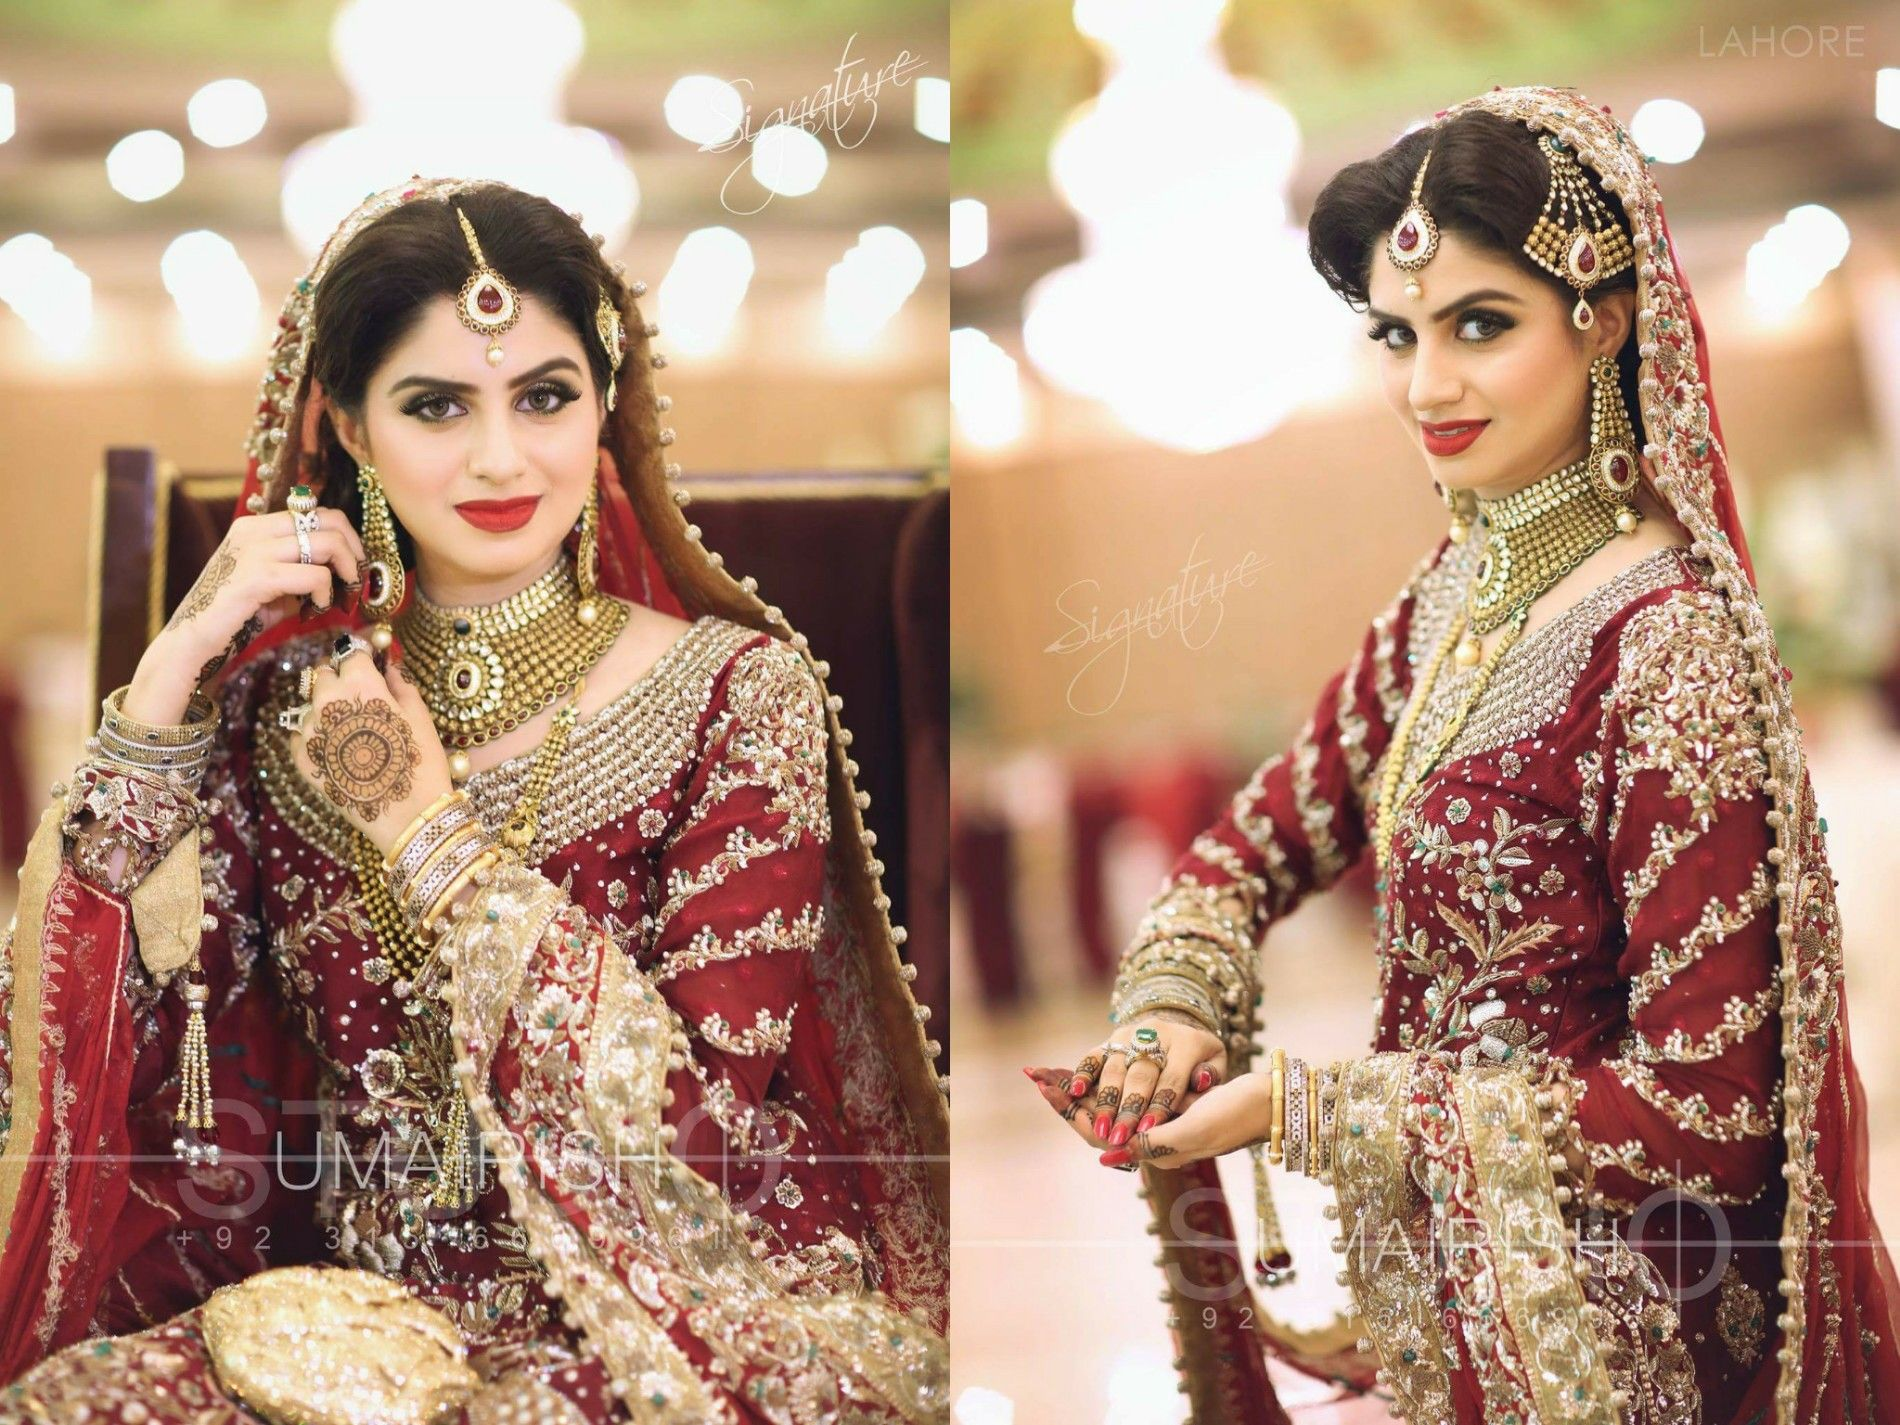 Blooming Red Rose In A Royal Style Photography By Umairish Studio Pakistani Bridal Bridal Wear Bridal Couture